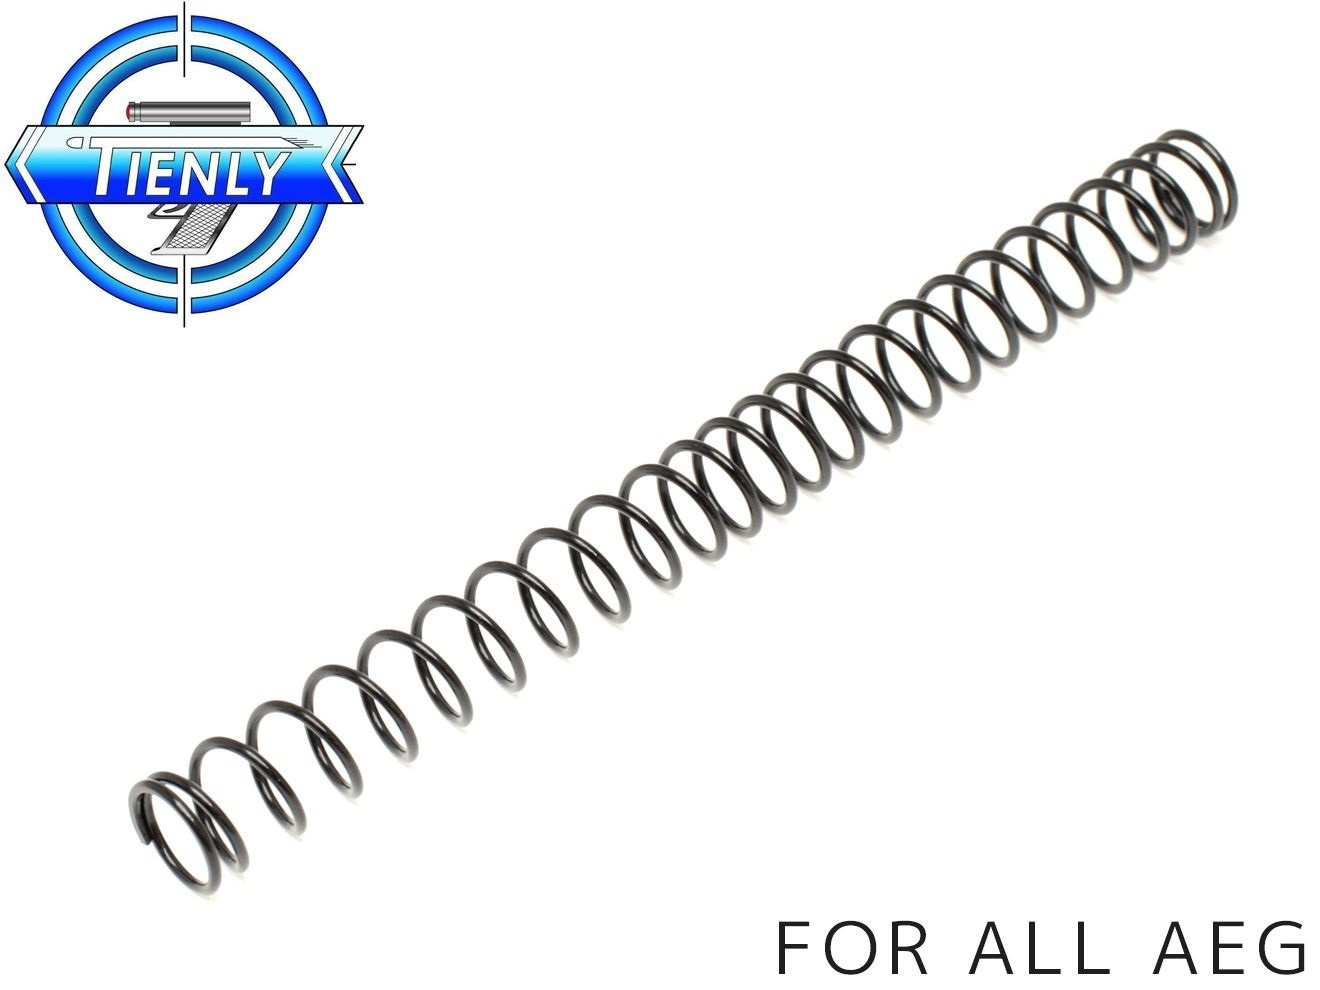 Tienly Non-linear spring m160